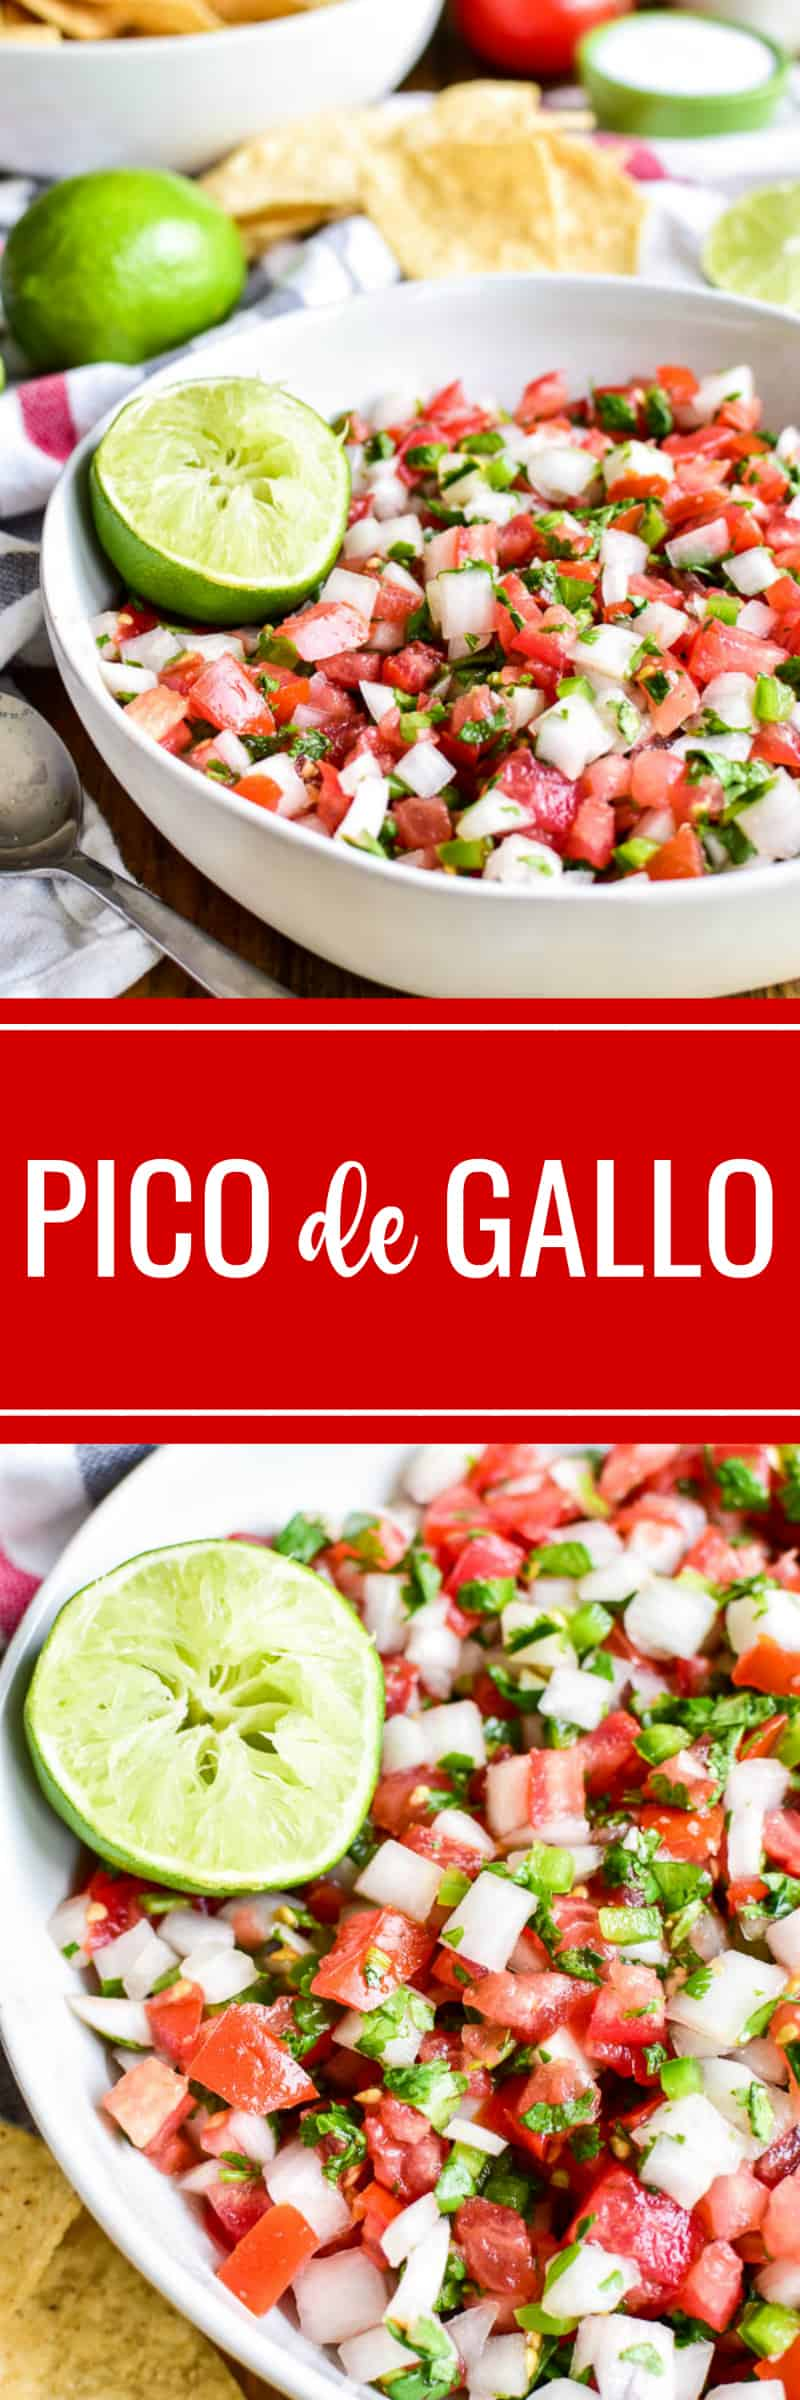 Collage image of homemade Pico de Gallo